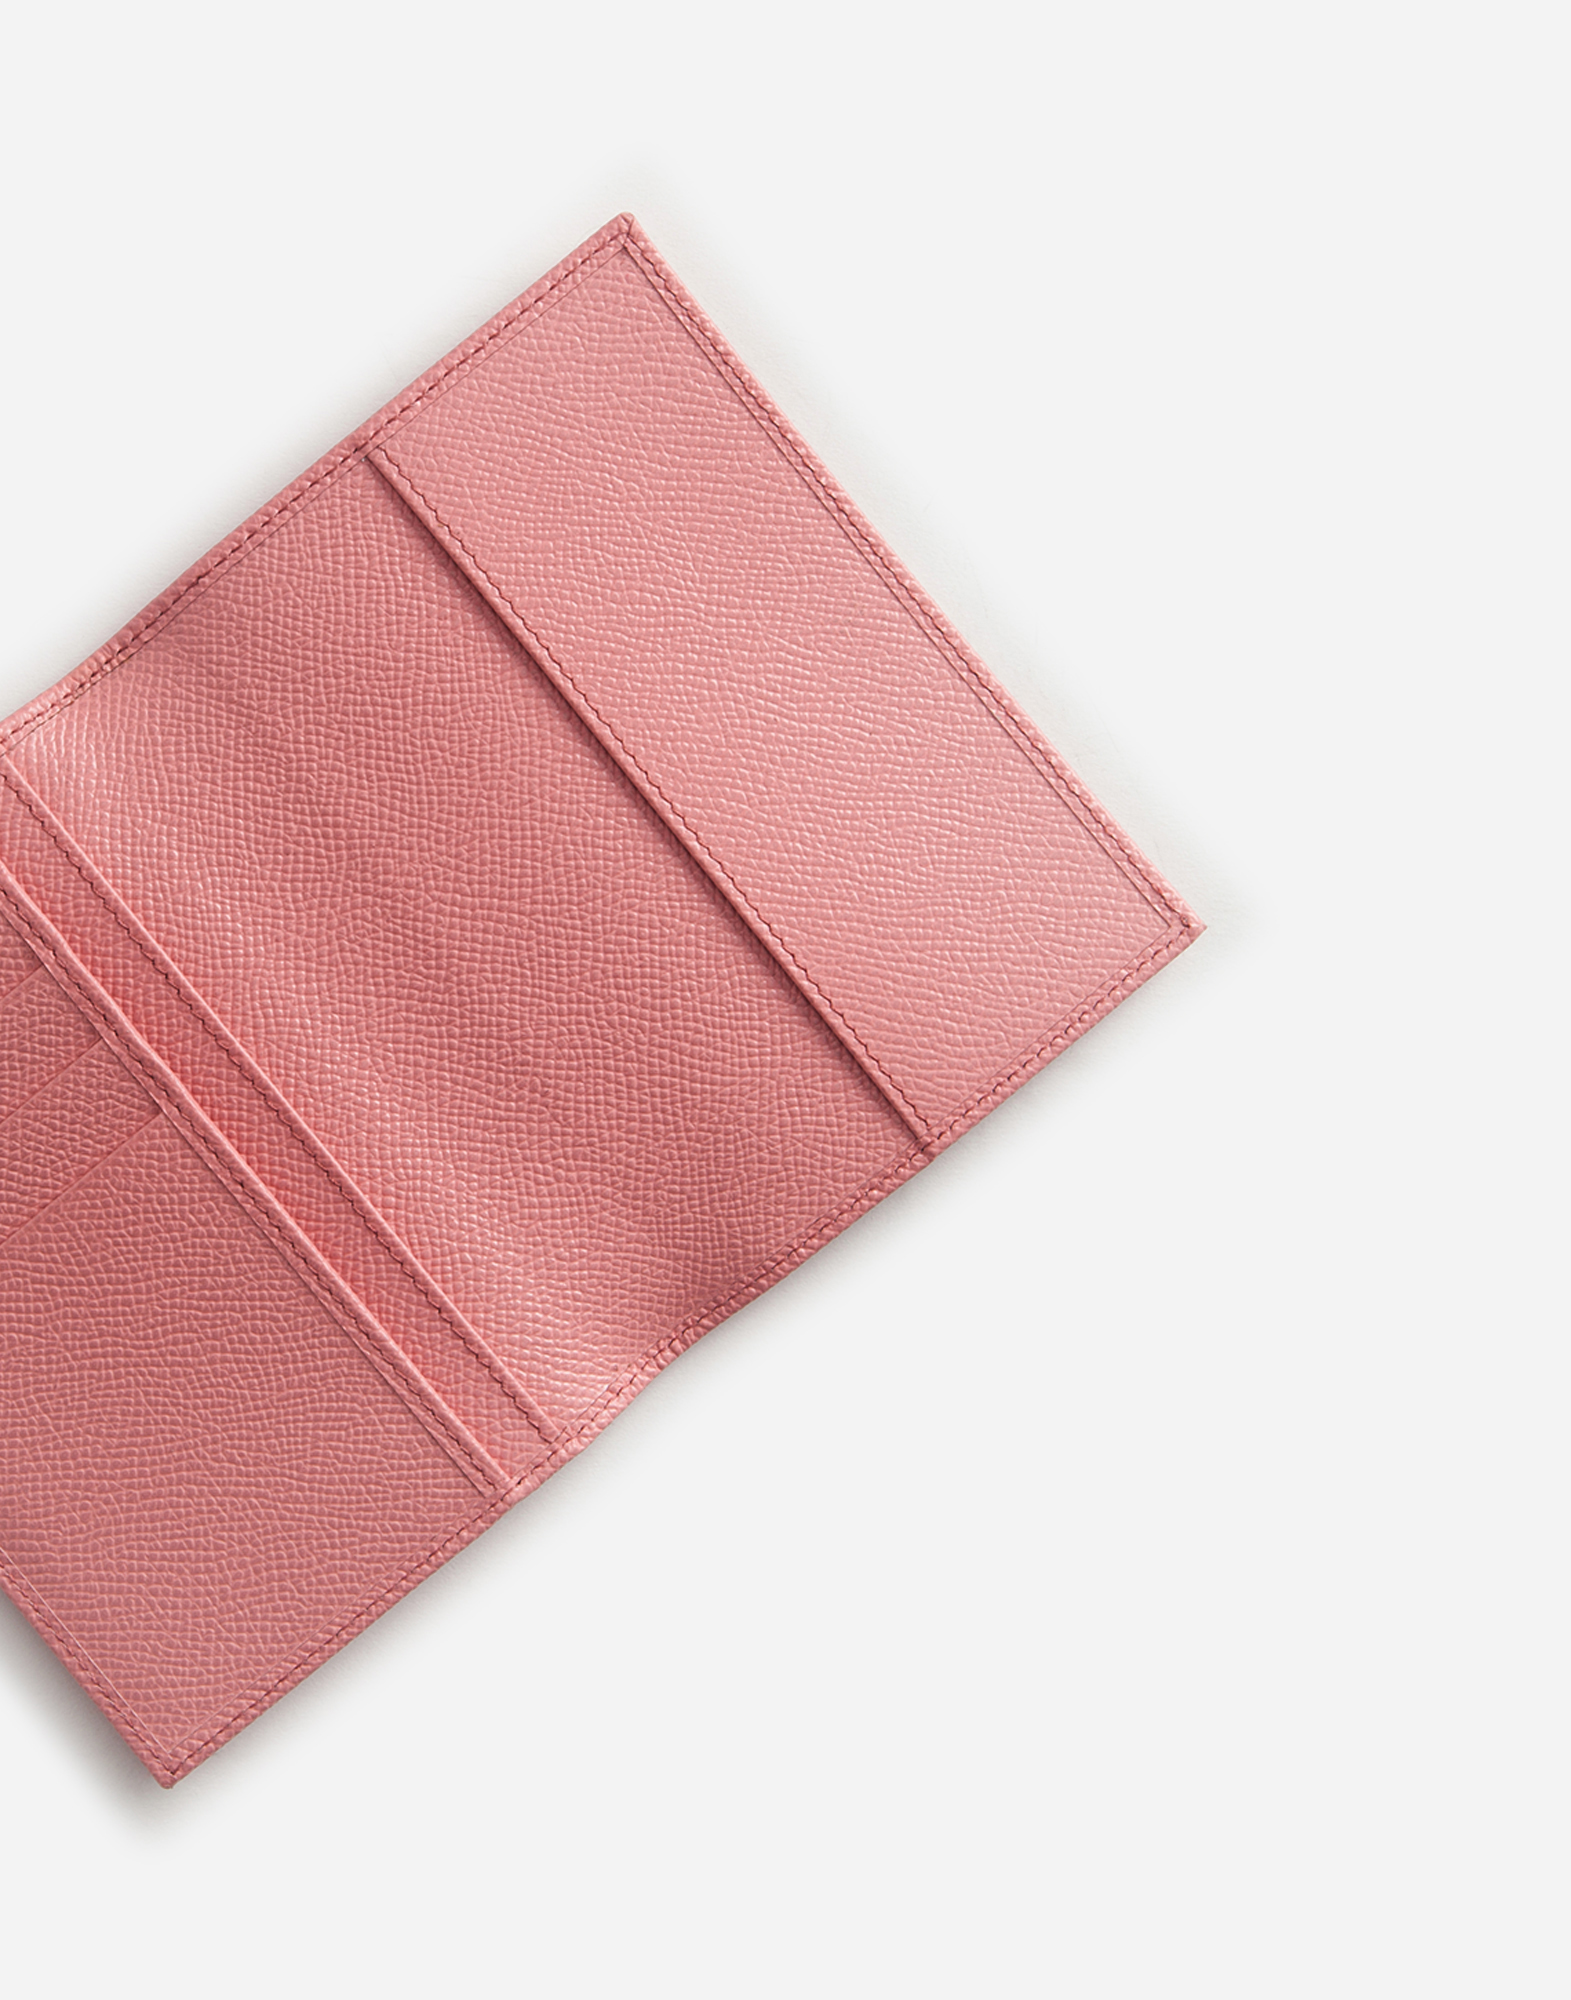 DAUPHINE CALFSKIN PASSPORT HOLDER